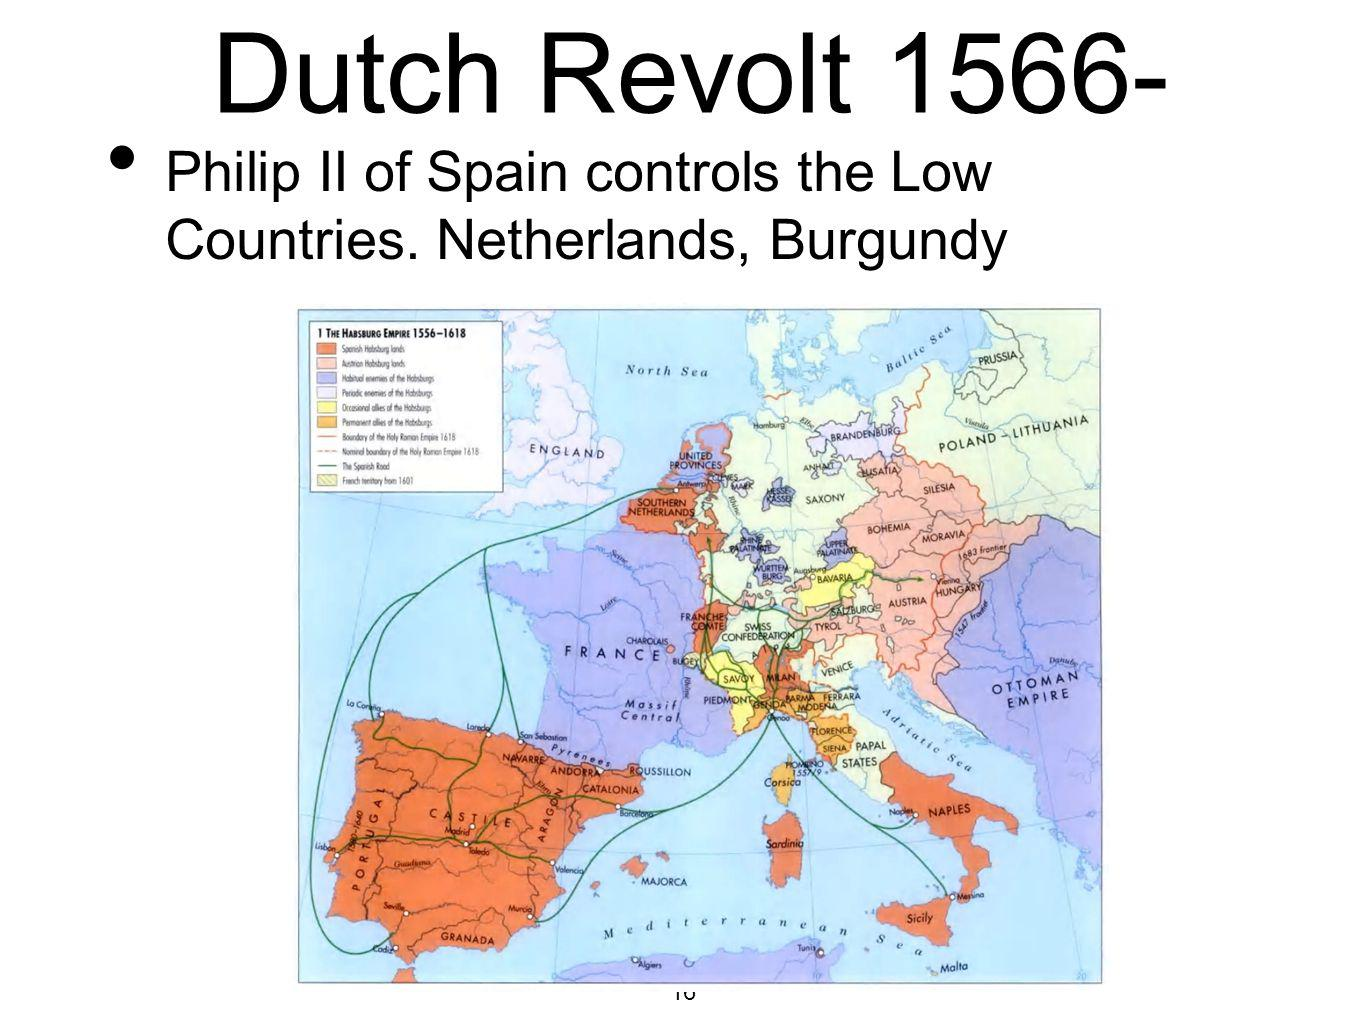 Dutch Revolt 1566- Philip II of Spain controls the Low Countries. Netherlands, Burgundy